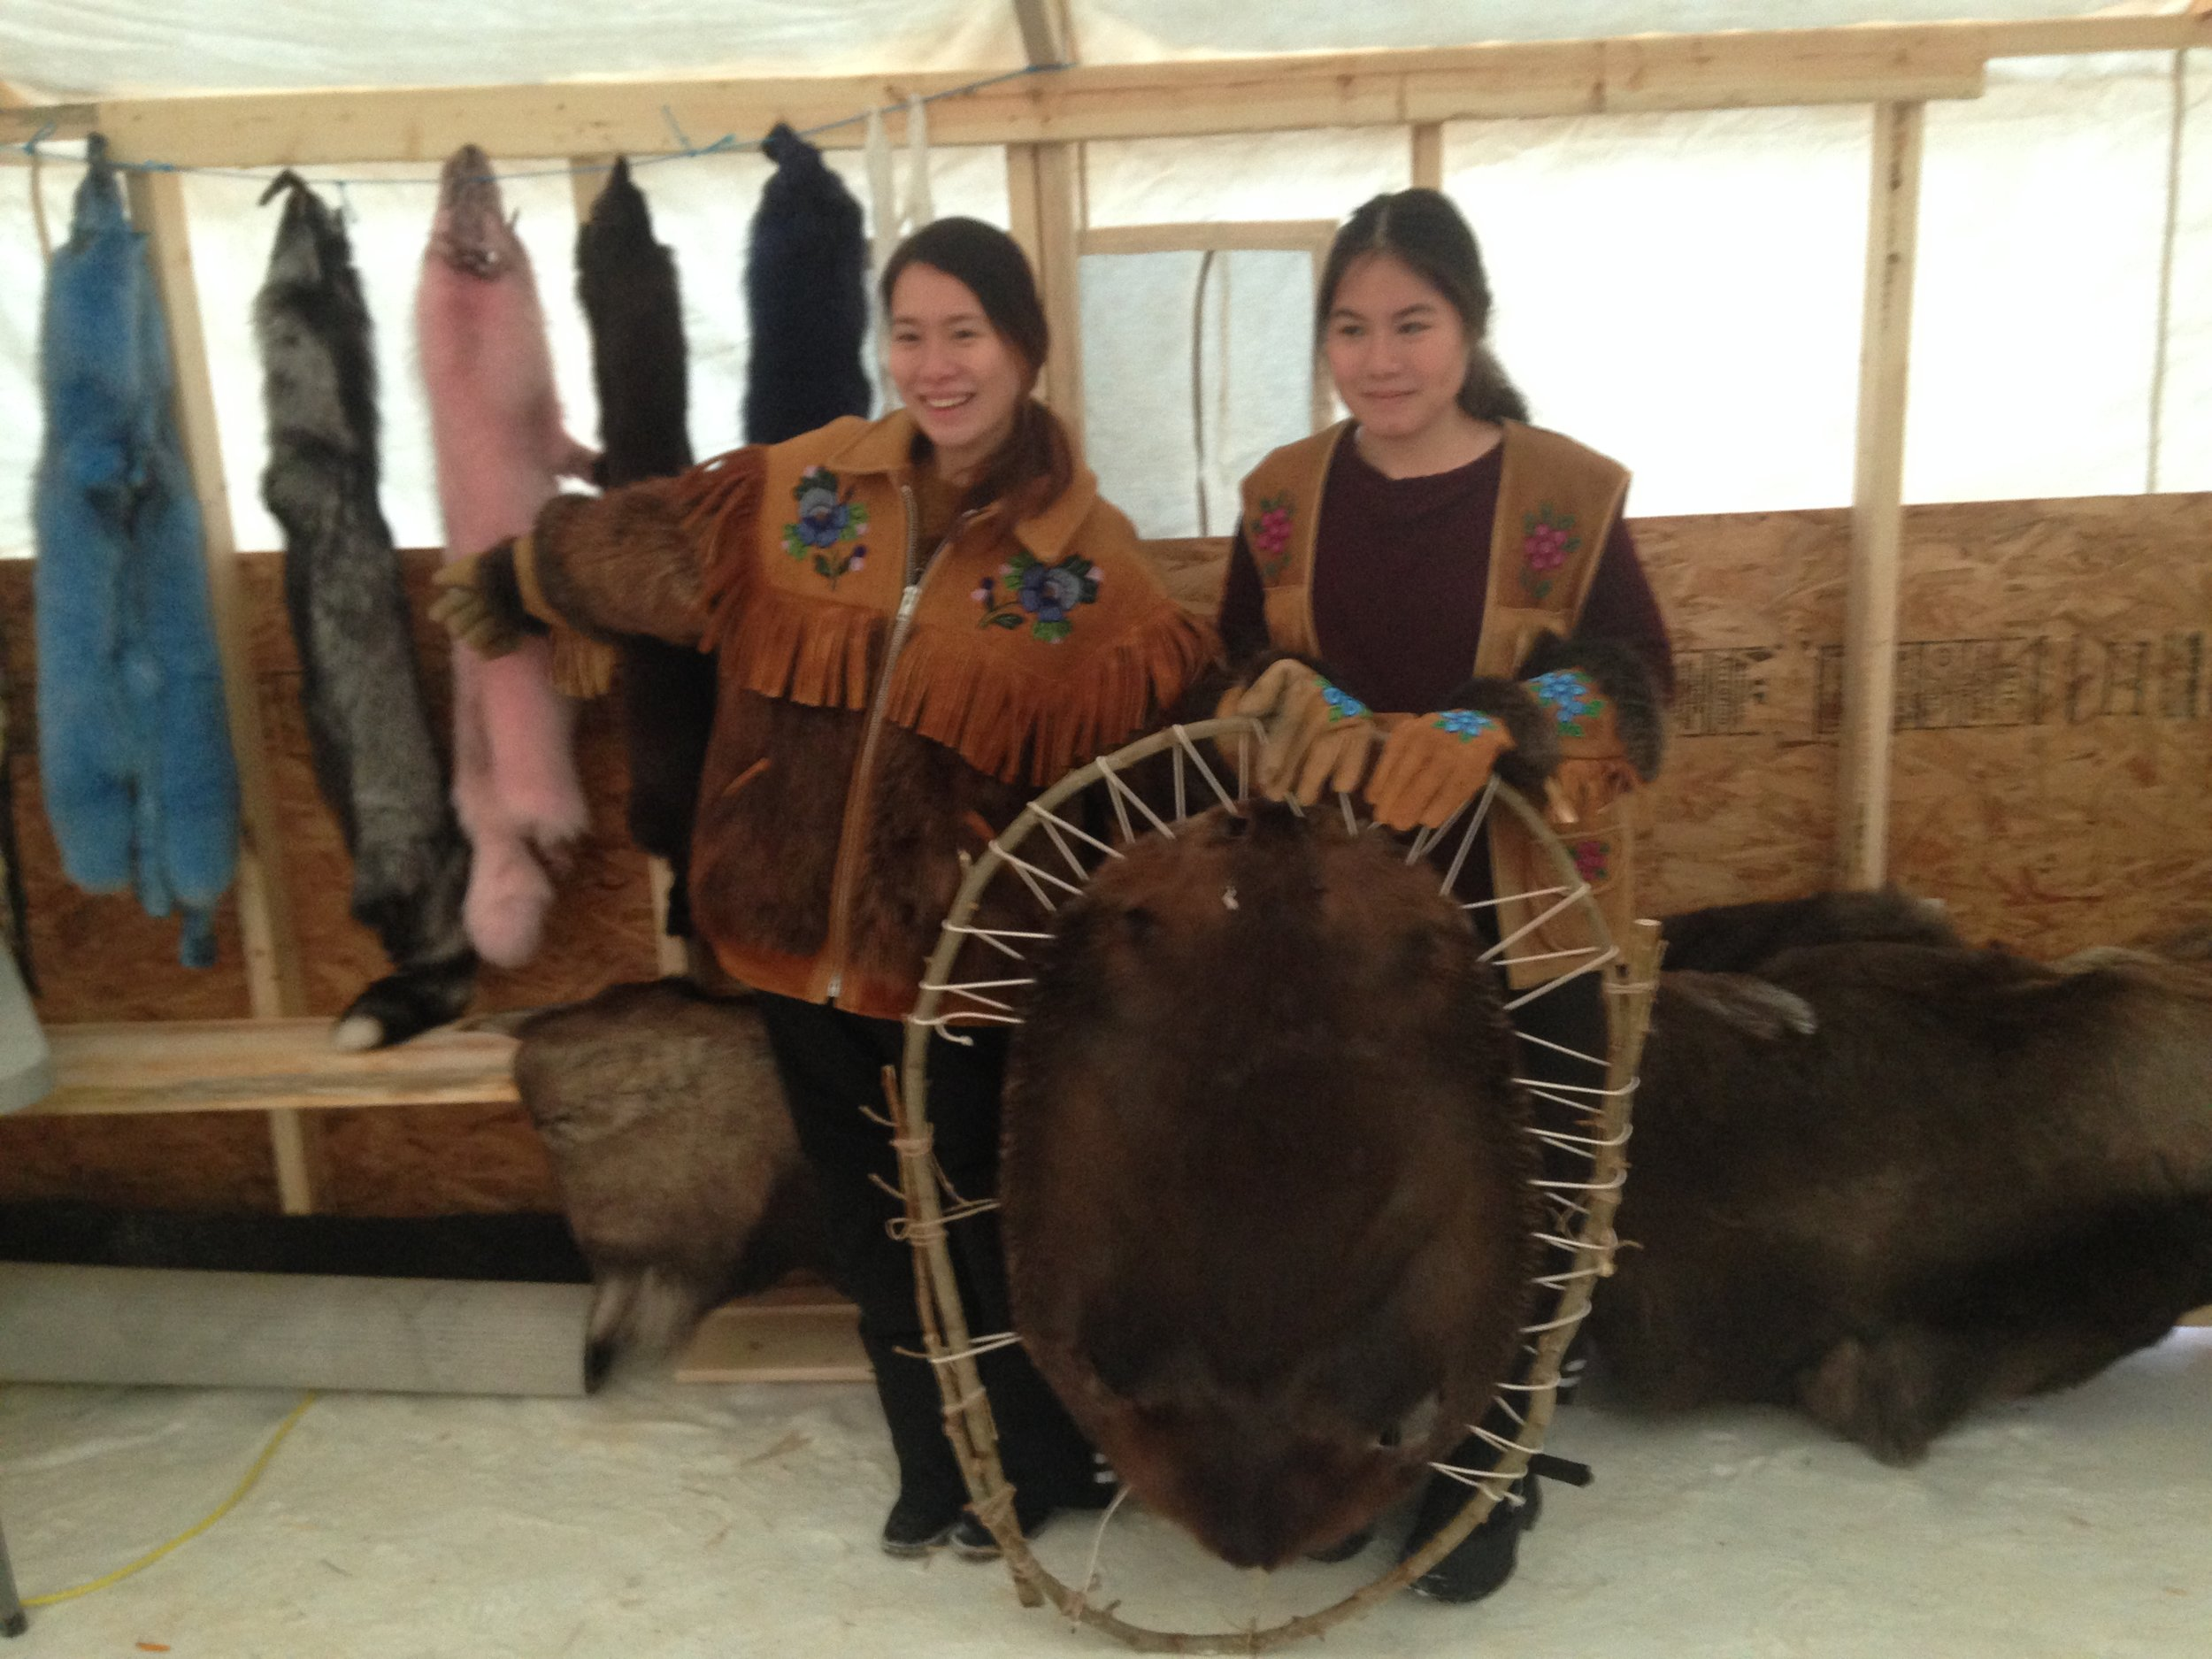 - From there we enter a heated trapper's tent for an introduction/photoshoot with traditional clothing and furs